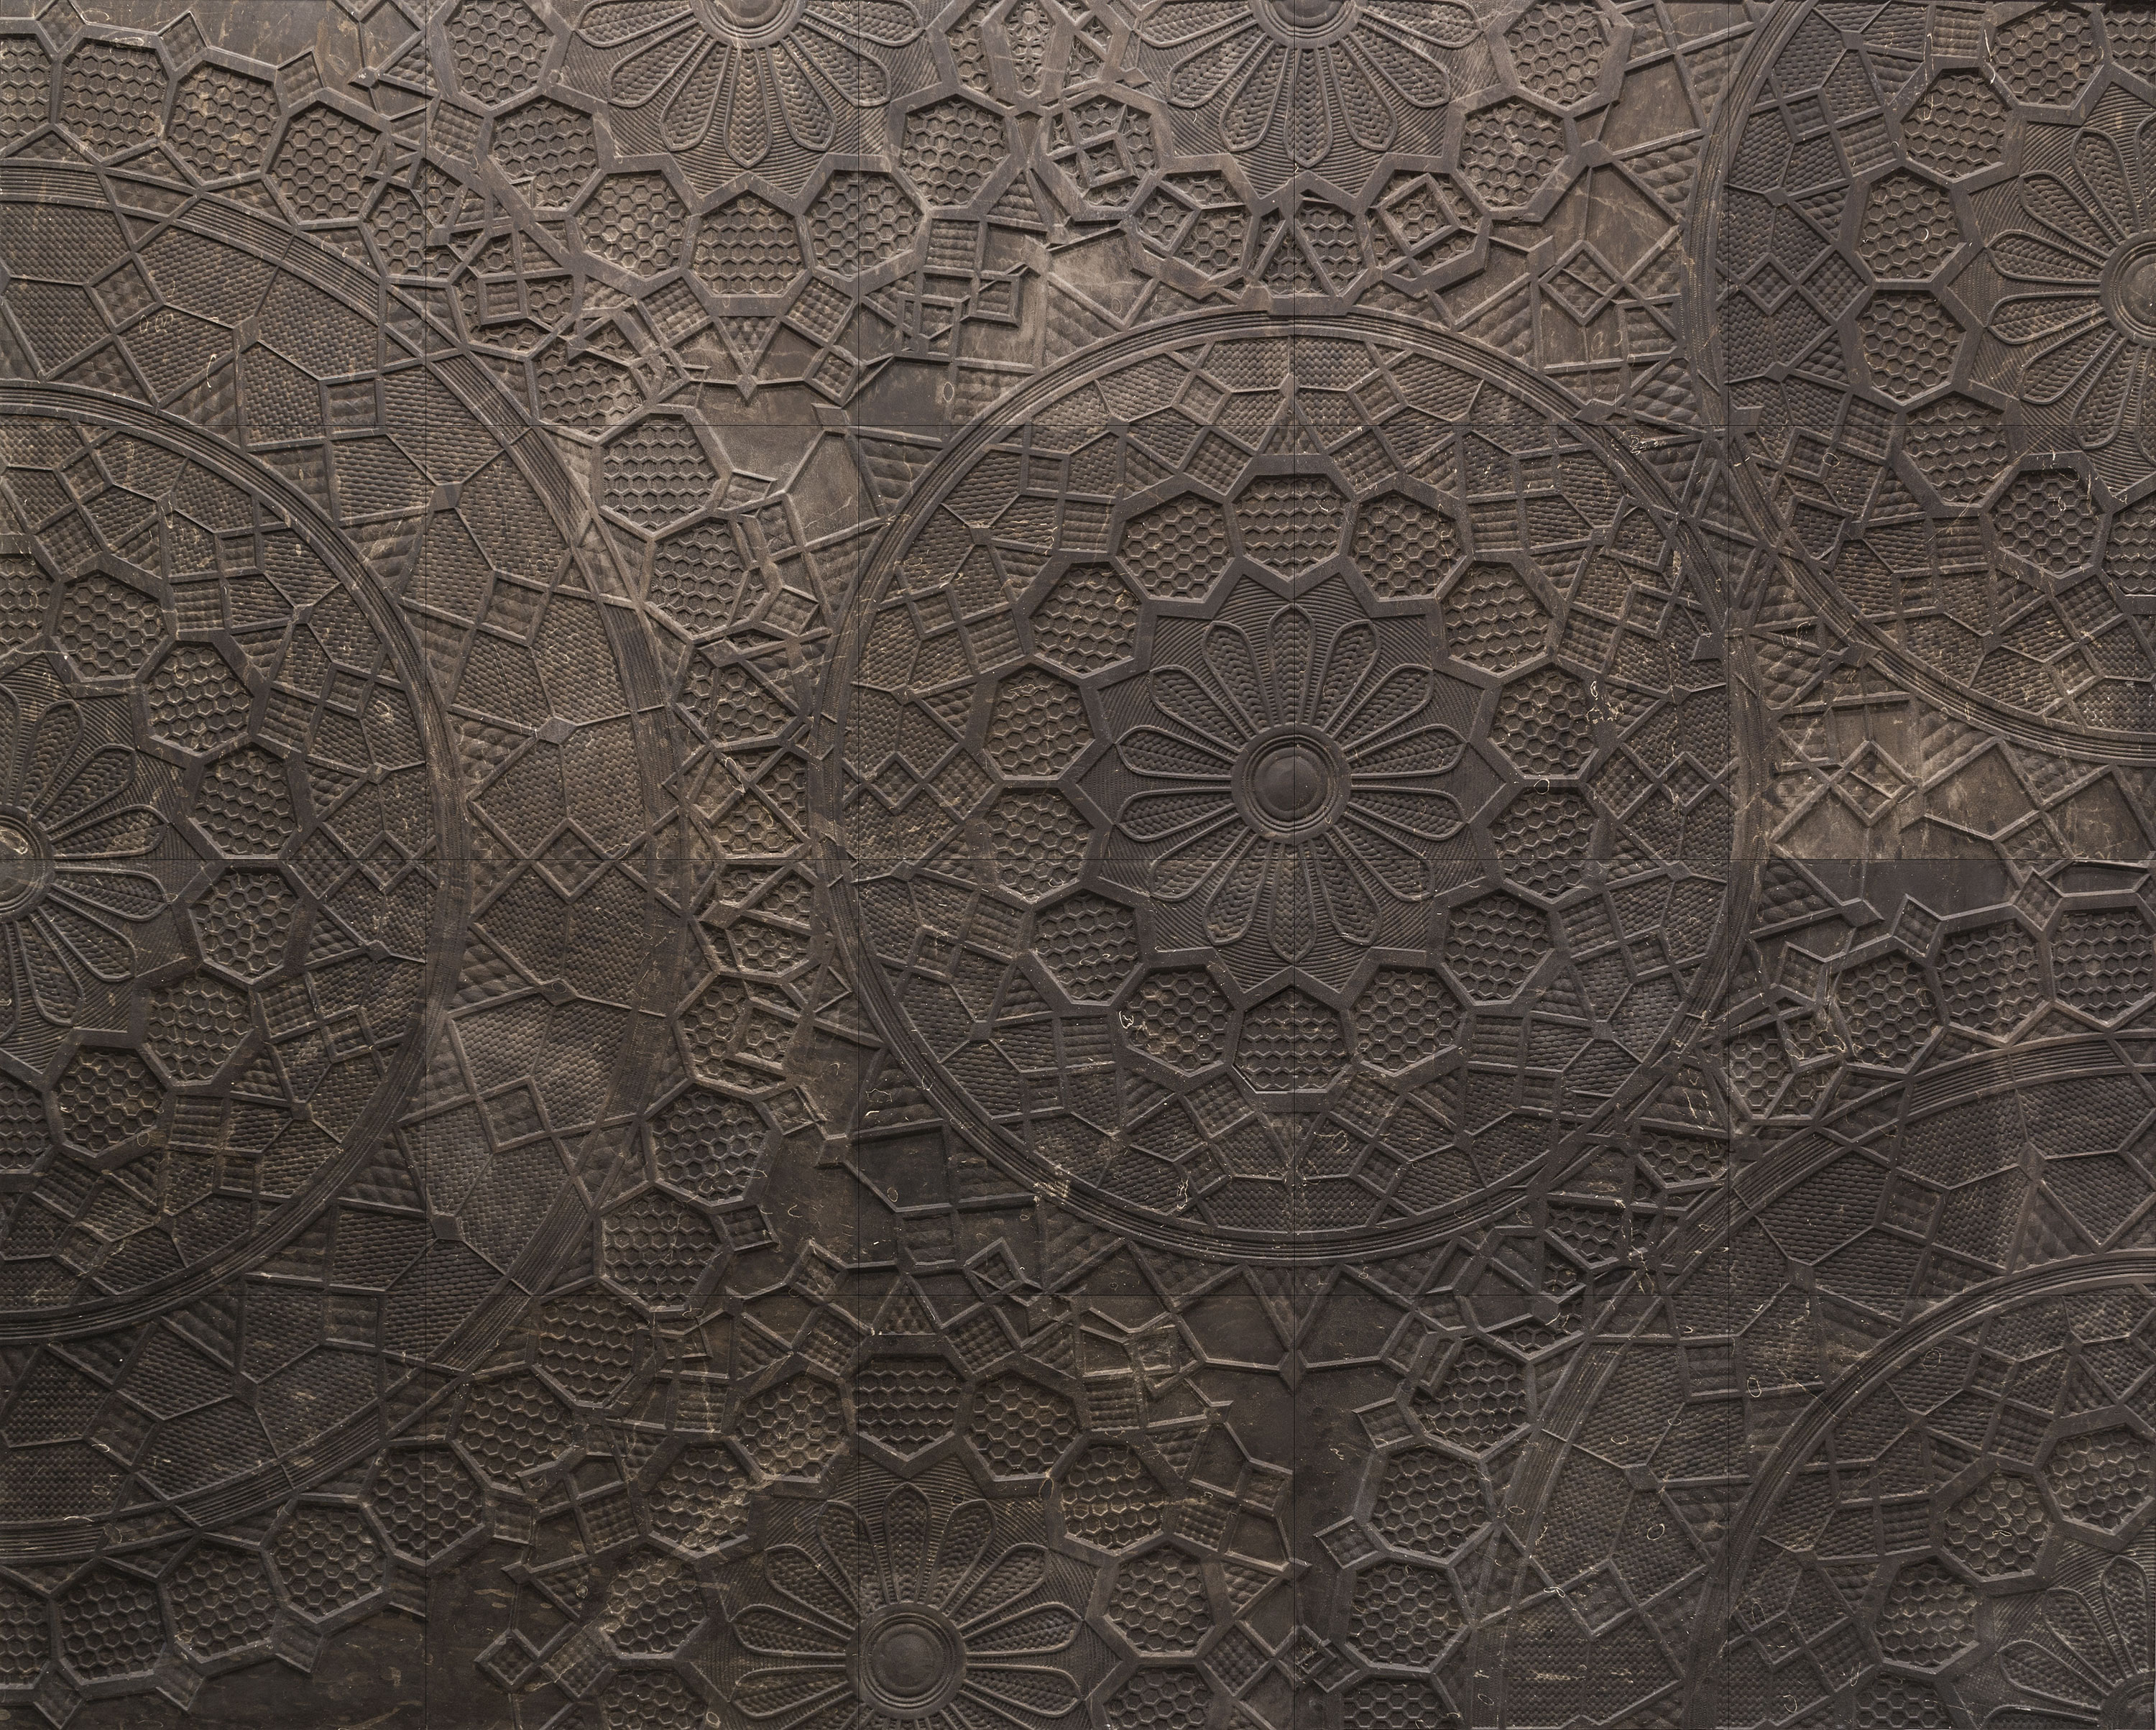 """Centocentrini - Stories of stone and words, of fossils designed by nature, a mixture of culture and intertwining of knowledge are brought to life within the MEDITERRANEAN WEAVES collection designed by Marella Ferrera.<div class=""""wpb_text_column wpb_content_element """"><div class=""""wpb_wrapper""""><p>A contemporary interpretation of the textile tradition made in Sicily that reflects the transparency and lightness of ancient embroidery, doilies, filet and macrame' on stone creating a delicate filigree of extraordinary beauty and chromatic quality.</p><p>All of Sicily is expressed in the palette of its richest stones; from the lava stone to the white Comiso stone, from the pitchstone to the Ragusa stone, from the Palermo stone to the Trapani stone.<br /><br /></p><p><em>""""A shared vision of the symbols of the Mediterranean 'etched in stone' which begin with the understanding of textiles, with a gentle hint of the baroque sculptures which then blend with the symbols of architecture.""""</em></p><p><em>Marella Ferrera </em></p></div></div> 